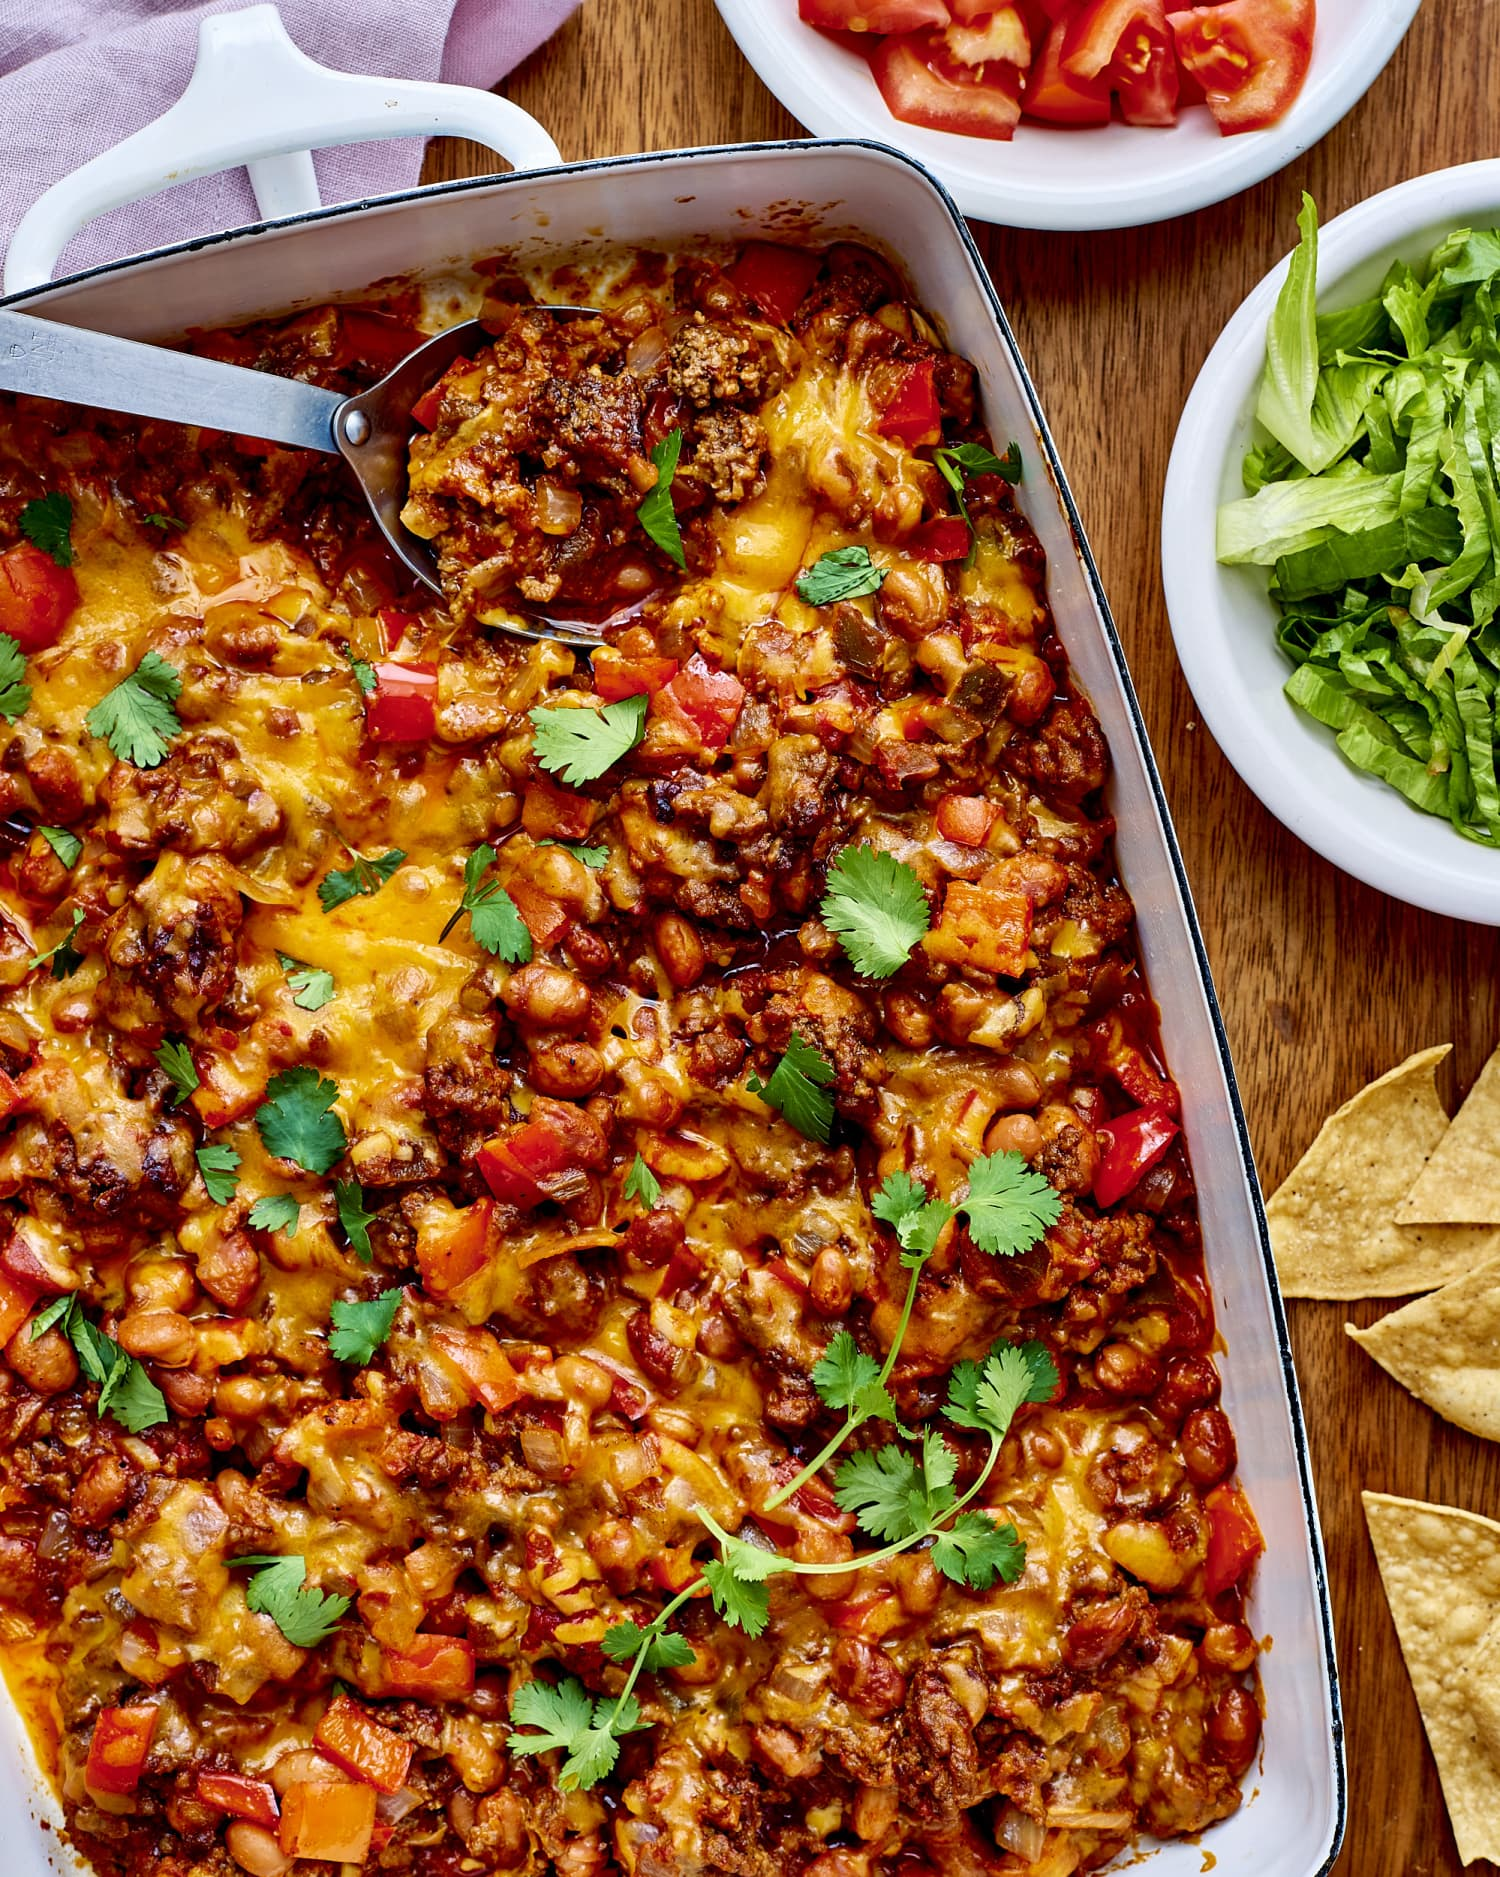 Ground Beef Taco Casserole Is Everything You Love About Tacos In a Casserole